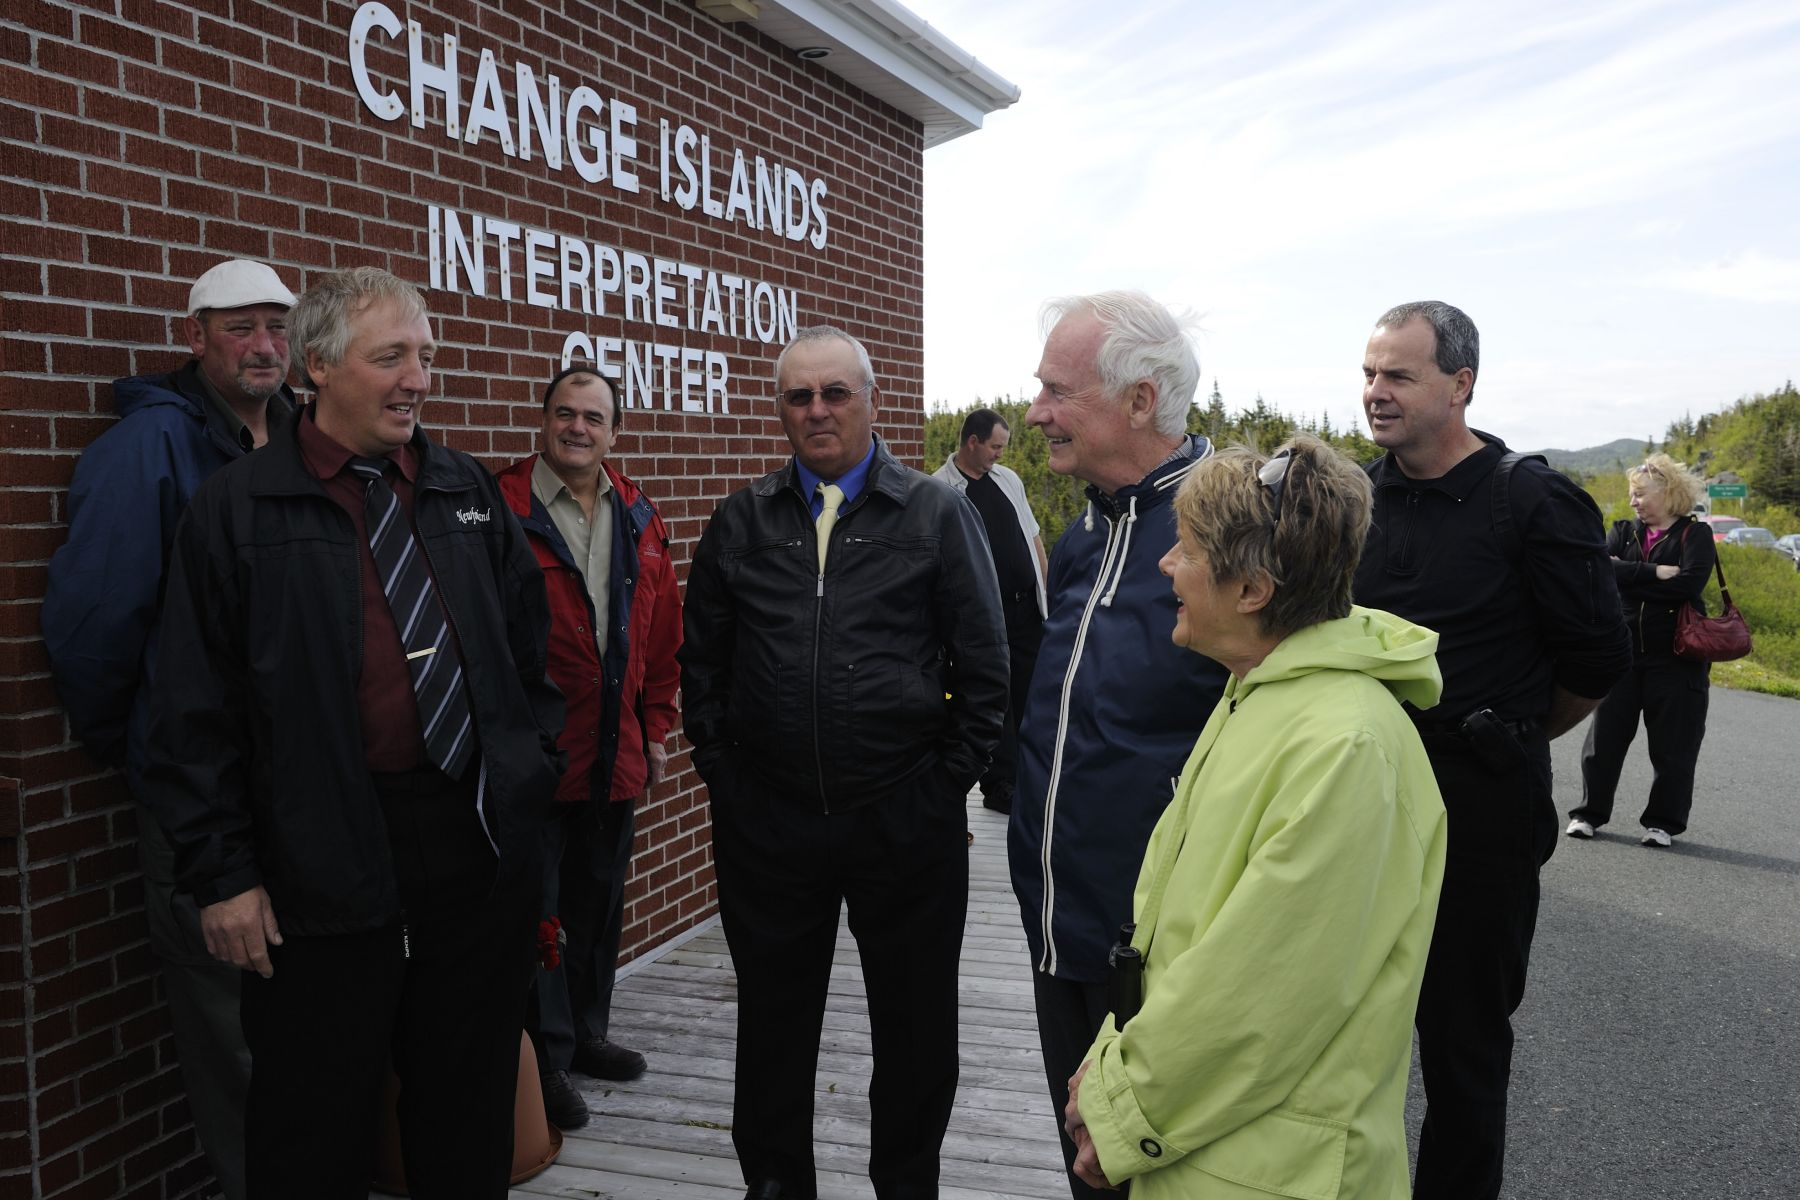 Upon their arrival in Change Islands, Their Excellencies met with His Worship Stephen Brinson, Mayor of the town, and councillors for an overview of the history of the island. Their first stop was at the Interpretation Centre.